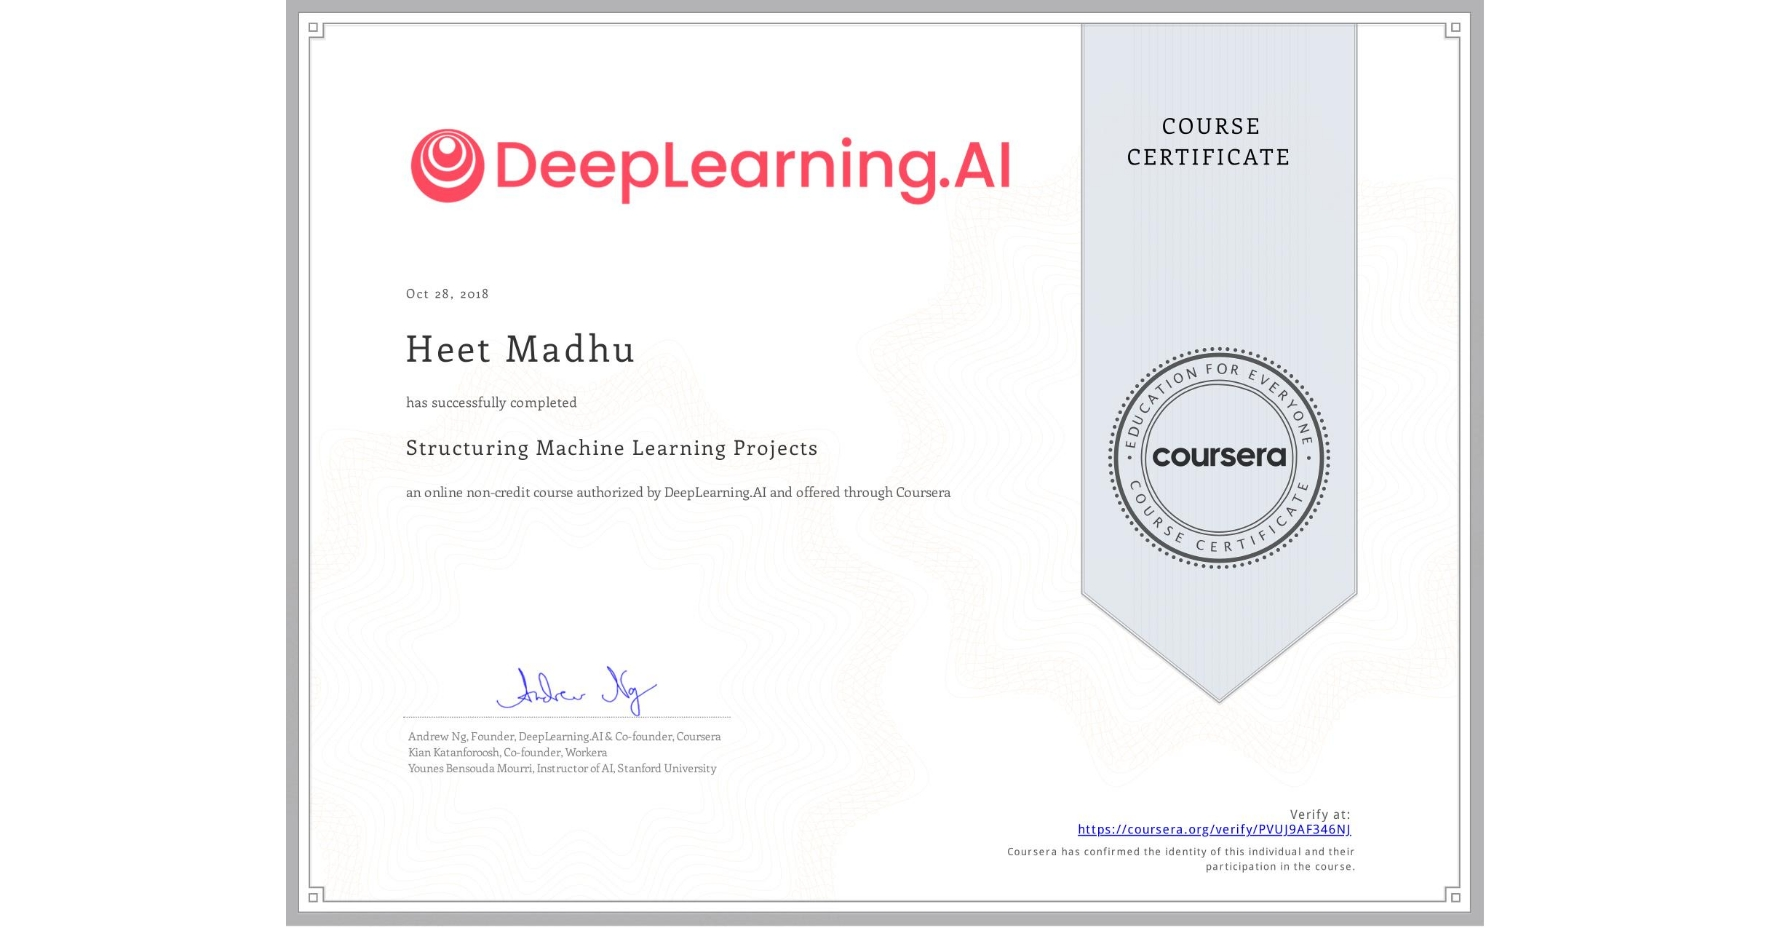 View certificate for Heet Madhu, Structuring Machine Learning Projects, an online non-credit course authorized by DeepLearning.AI and offered through Coursera